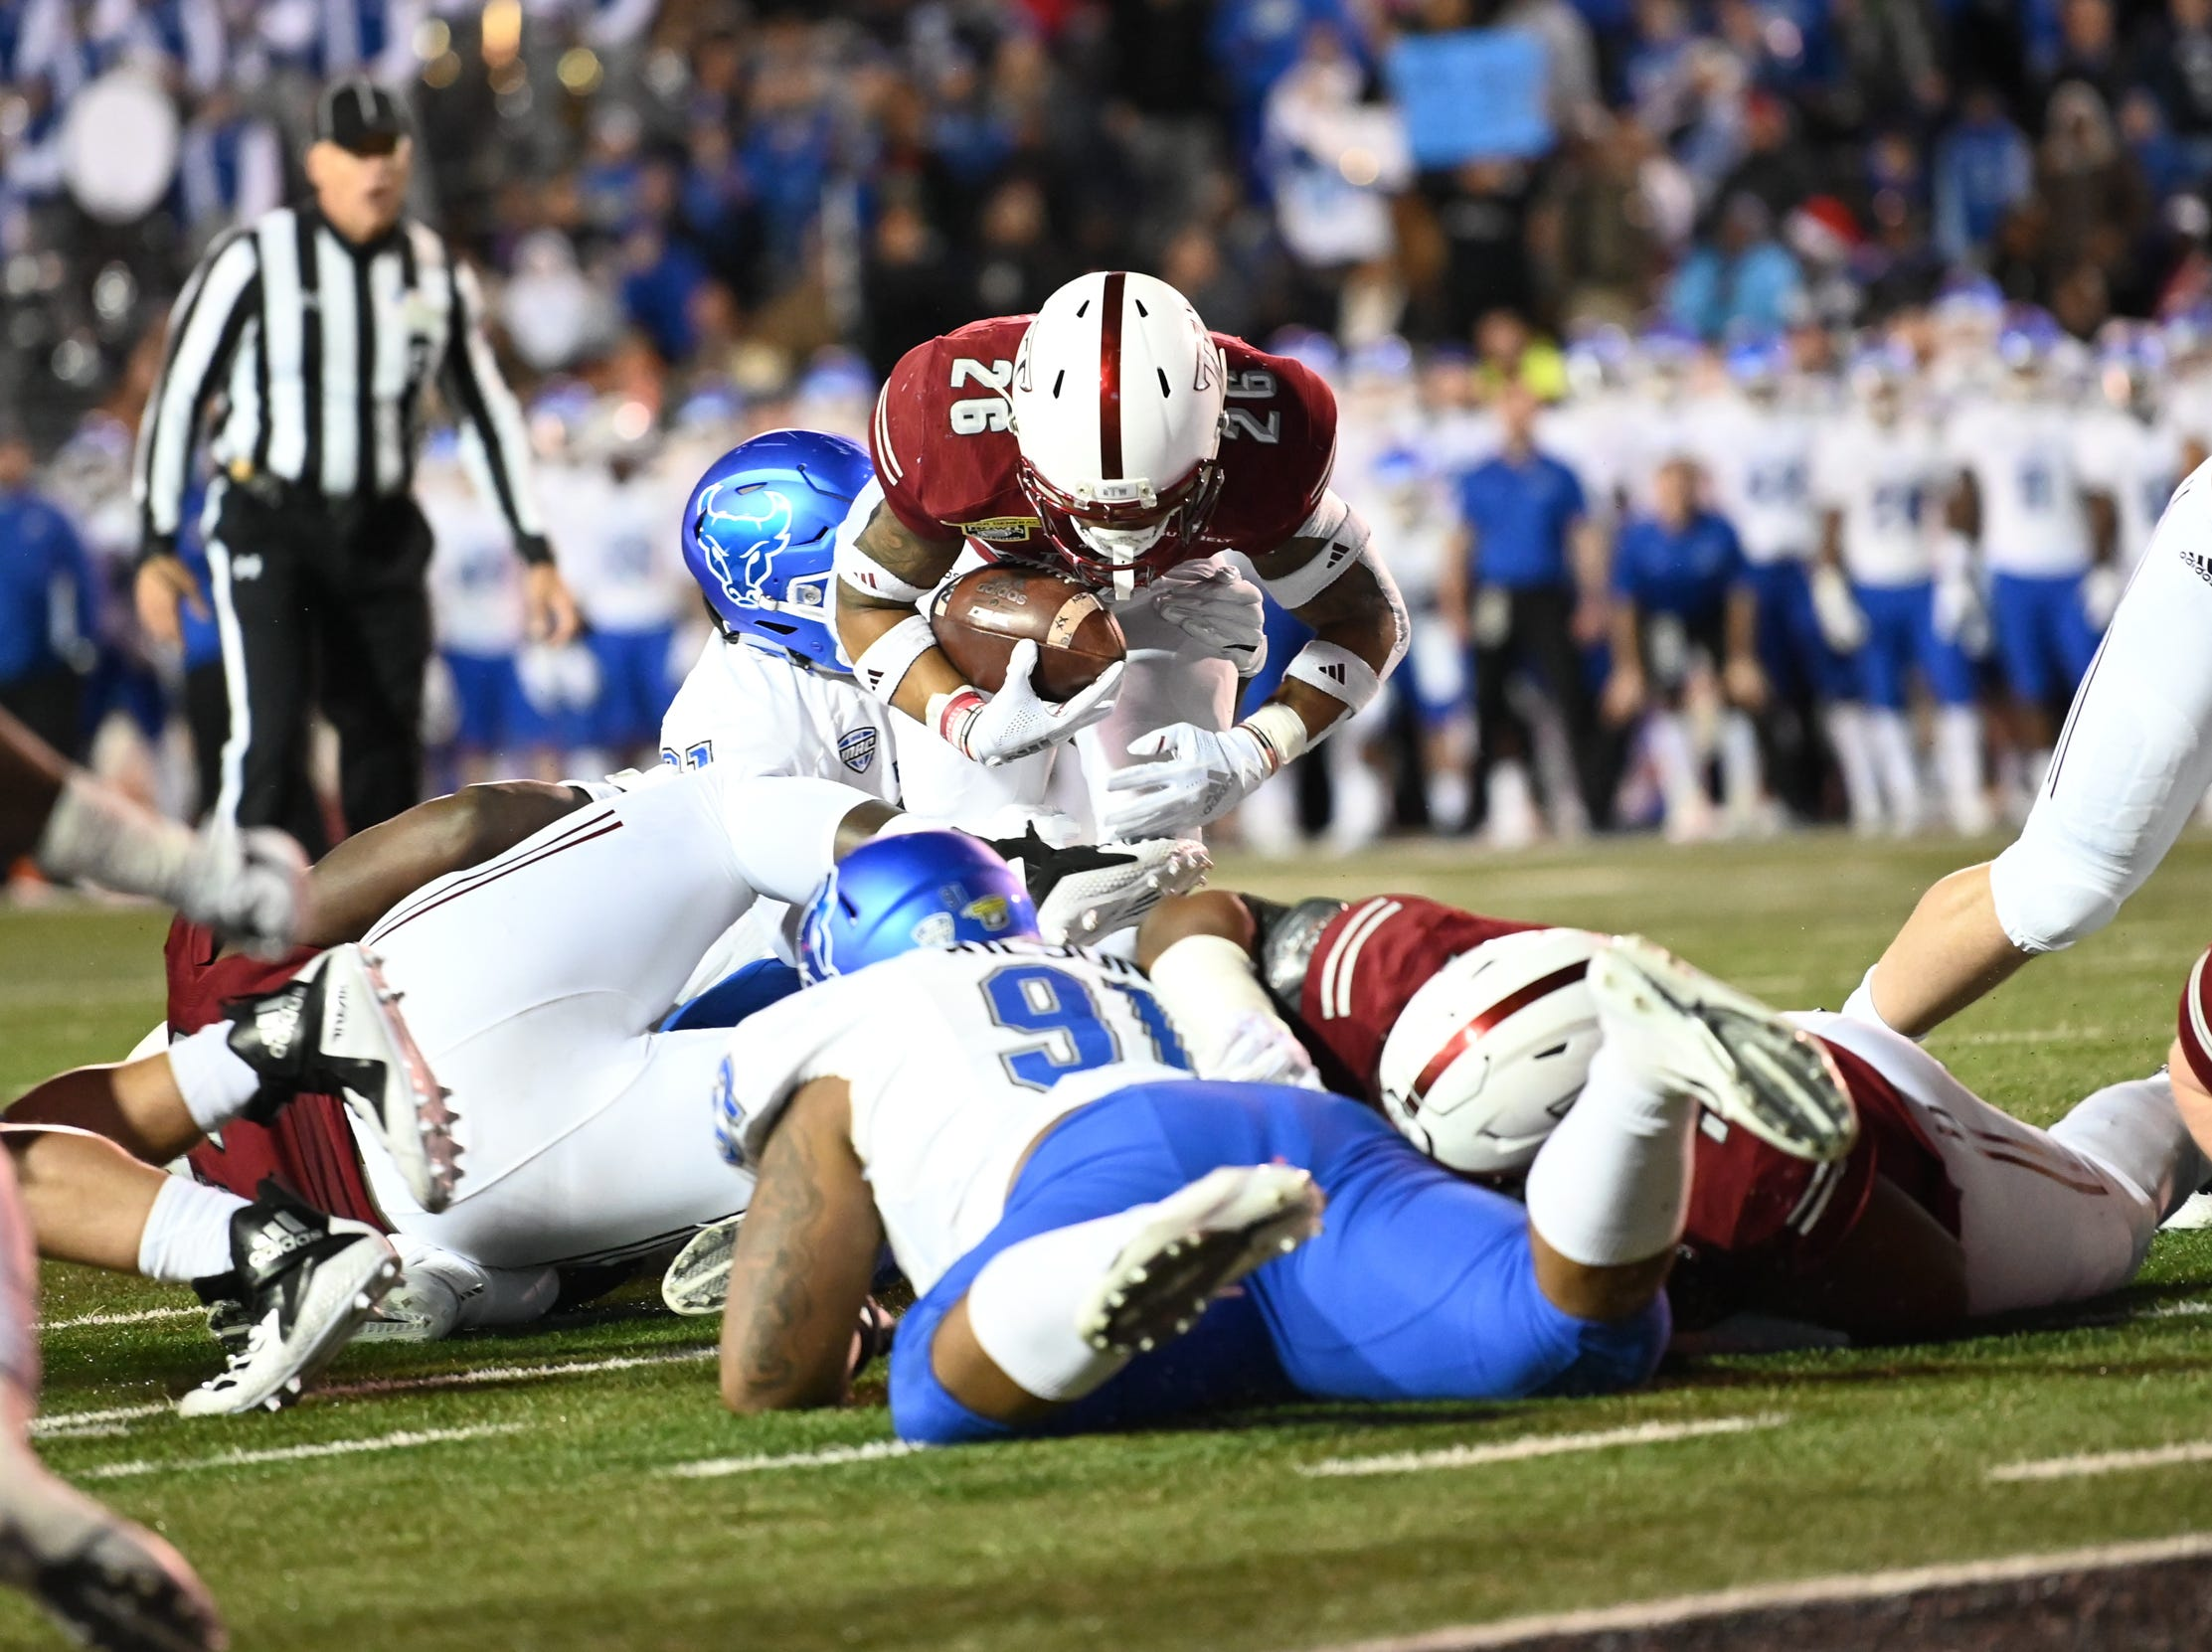 Troy Trojans running back B.J. Smith (26) goes over a pile of defenders during the Dollar General Bowl held at Ladd-Peebles Stadium in Mobile on Saturday, Dec. 22, 2018.